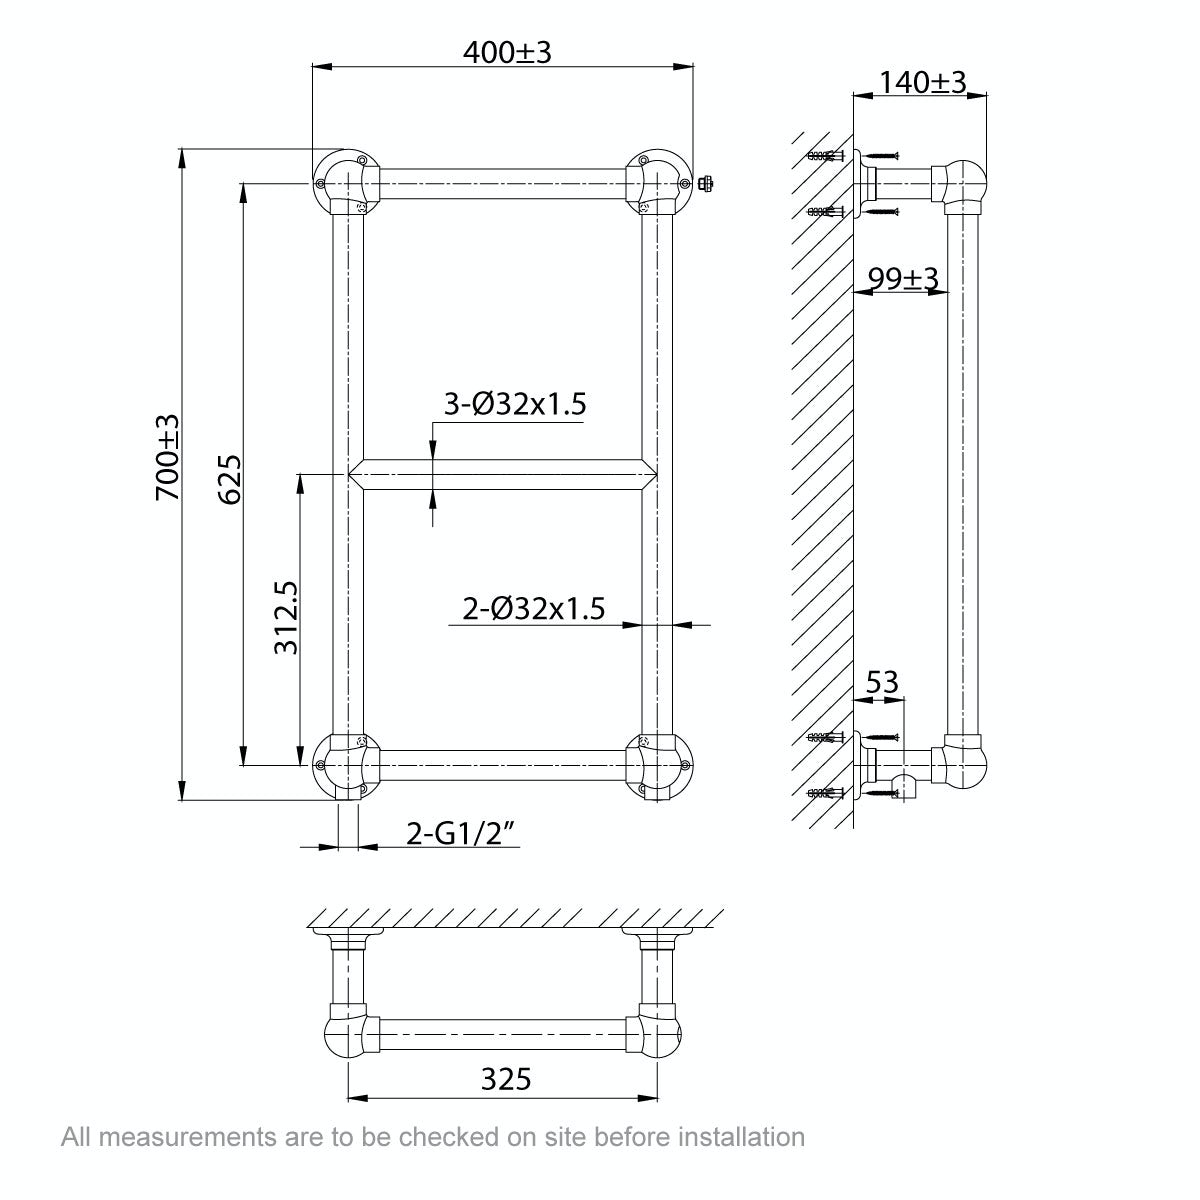 Dimensions for The Bath Co. Winchester wall mounted heated towel rail 700 x 400